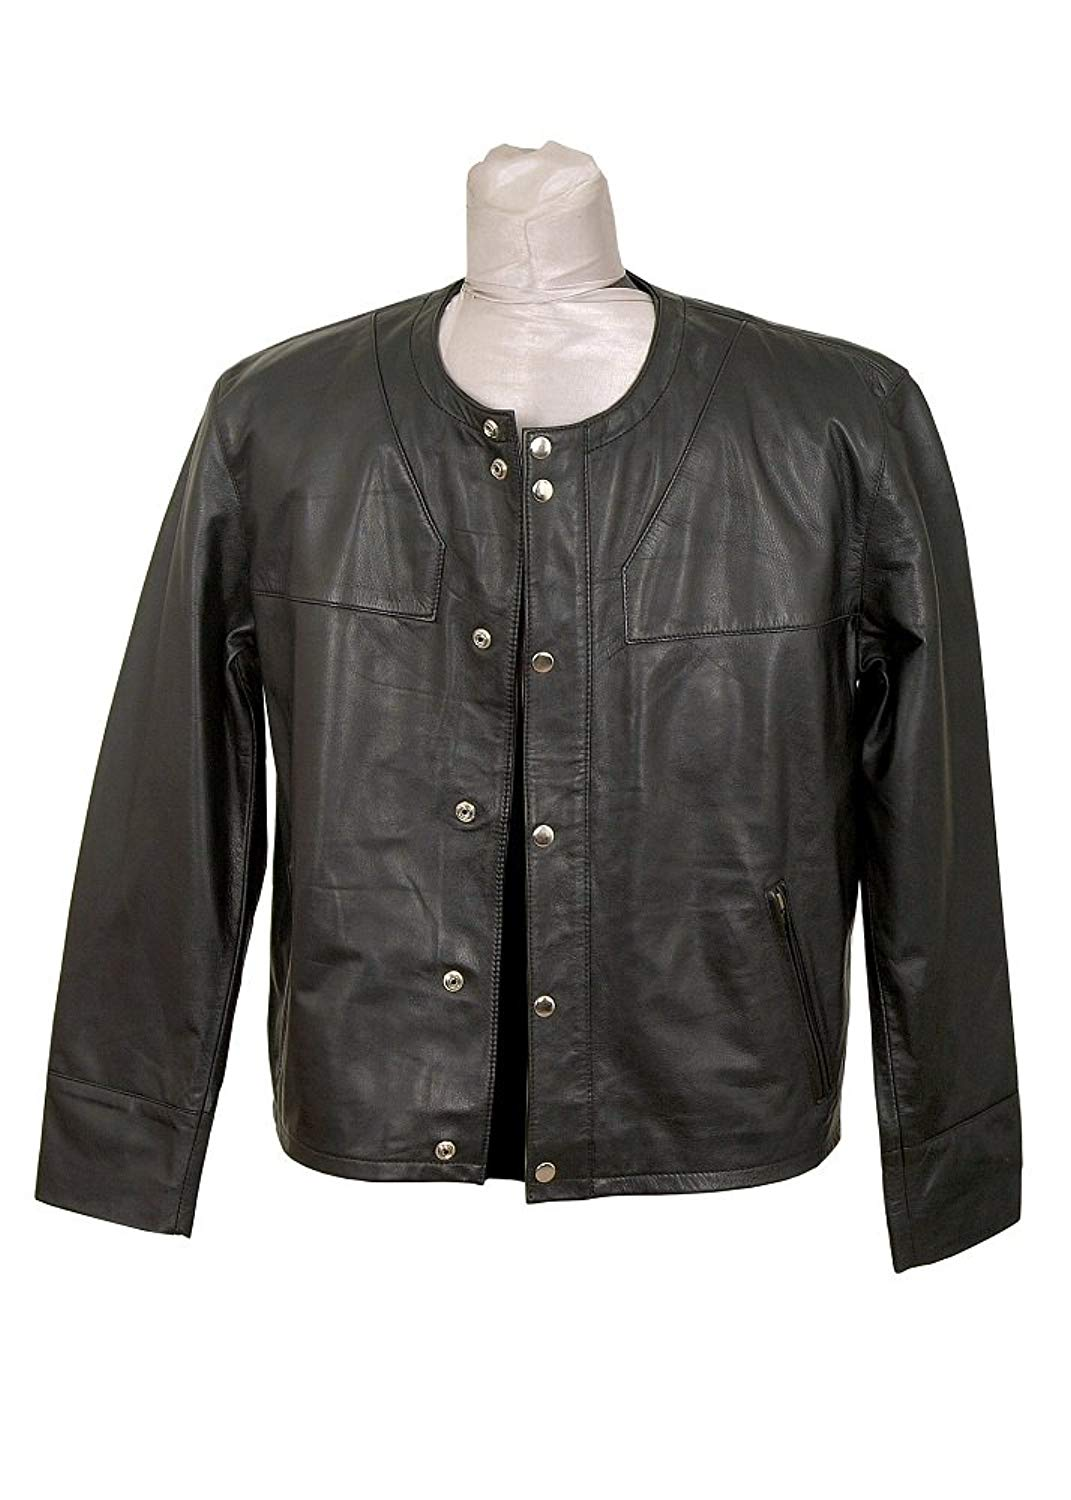 a2e4dcb07 Cheap Black Leather Collarless Jacket, find Black Leather Collarless ...